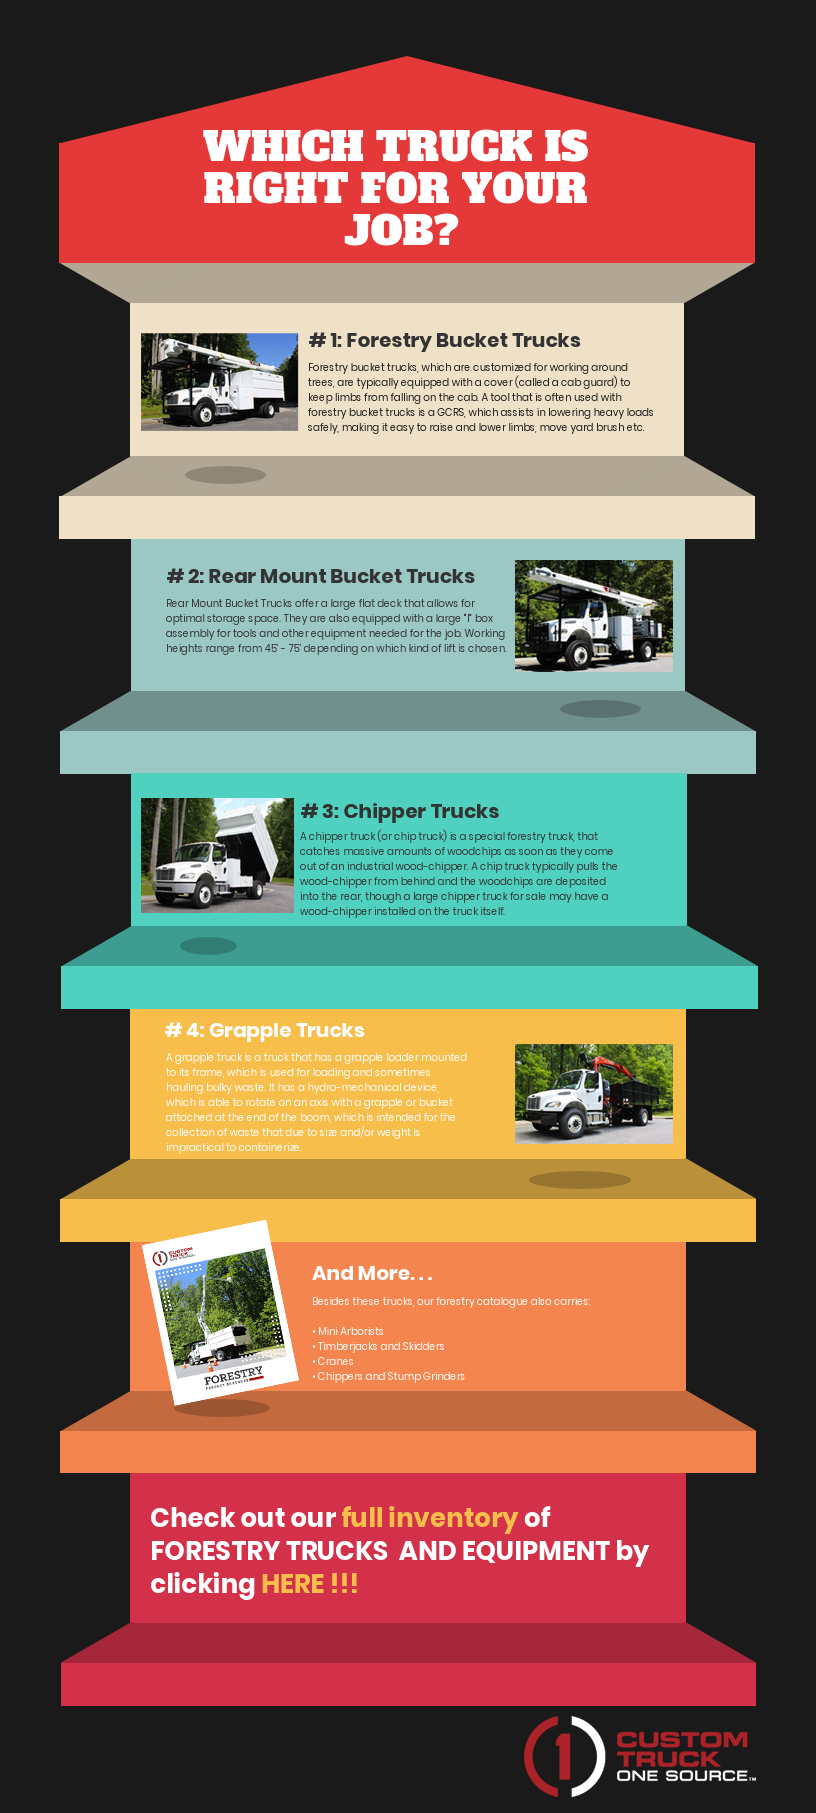 Which Forestry Truck is Right for You?